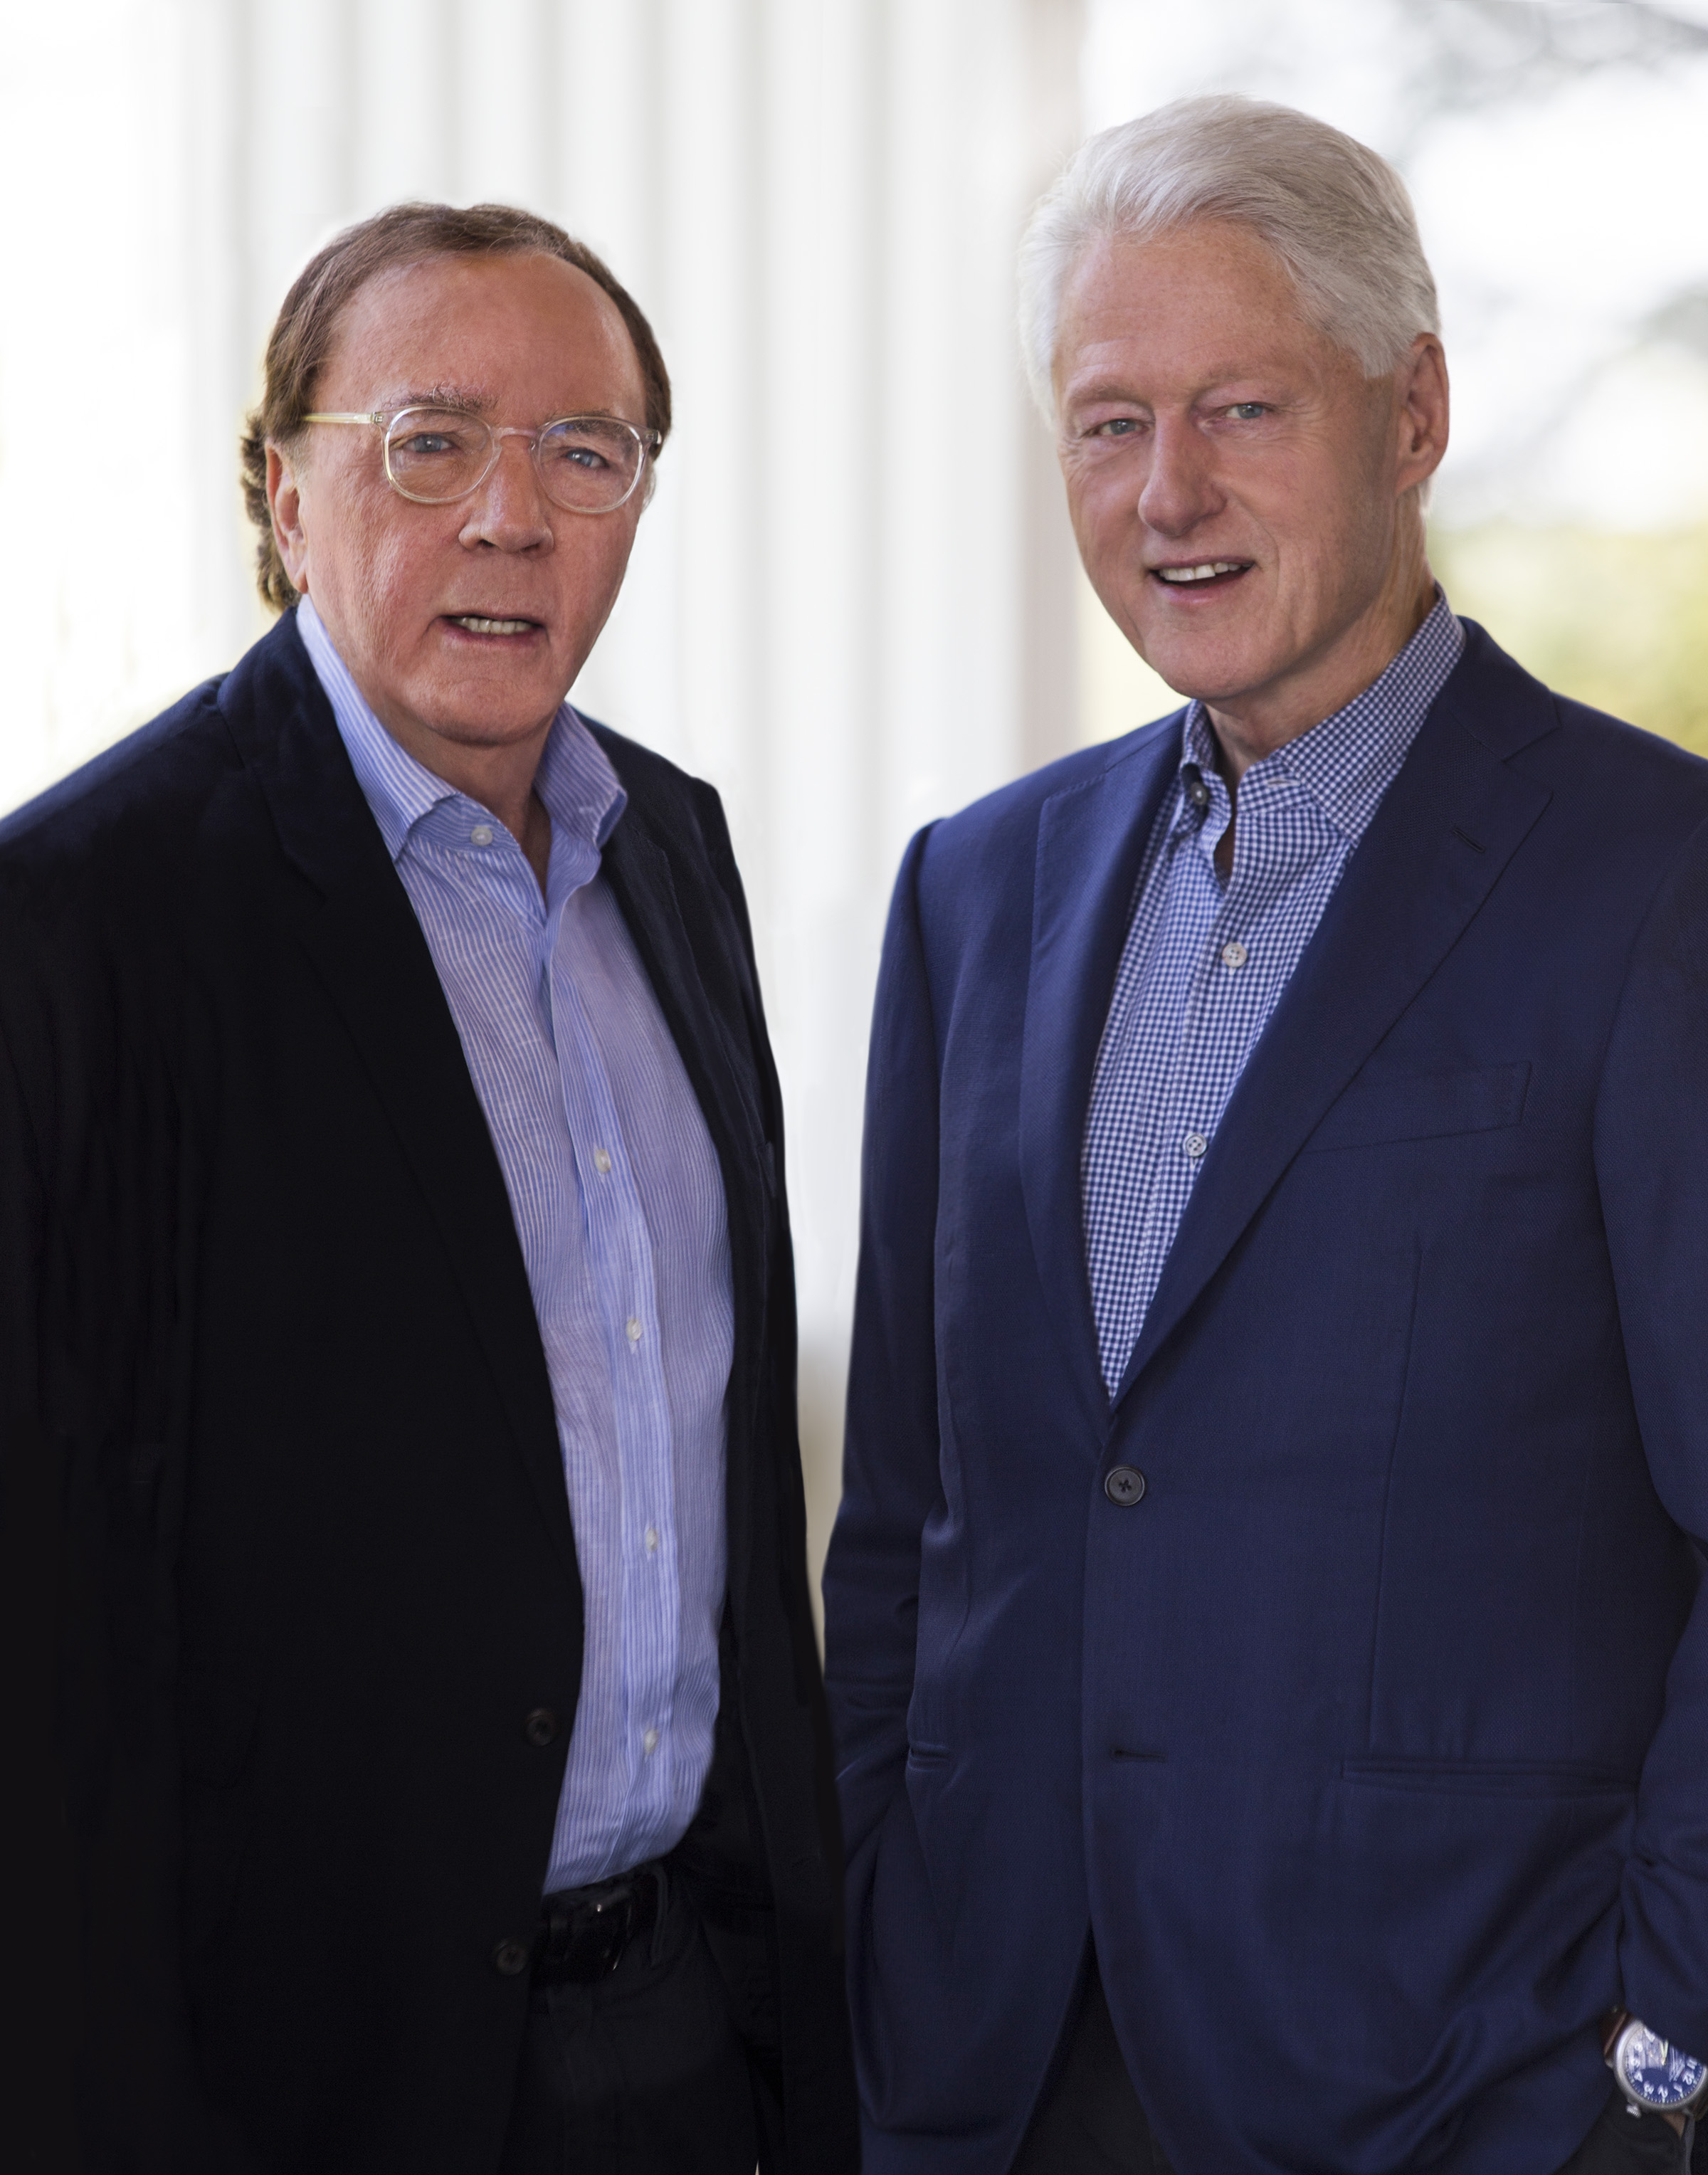 Author James Patterson and former President Bill Clinton